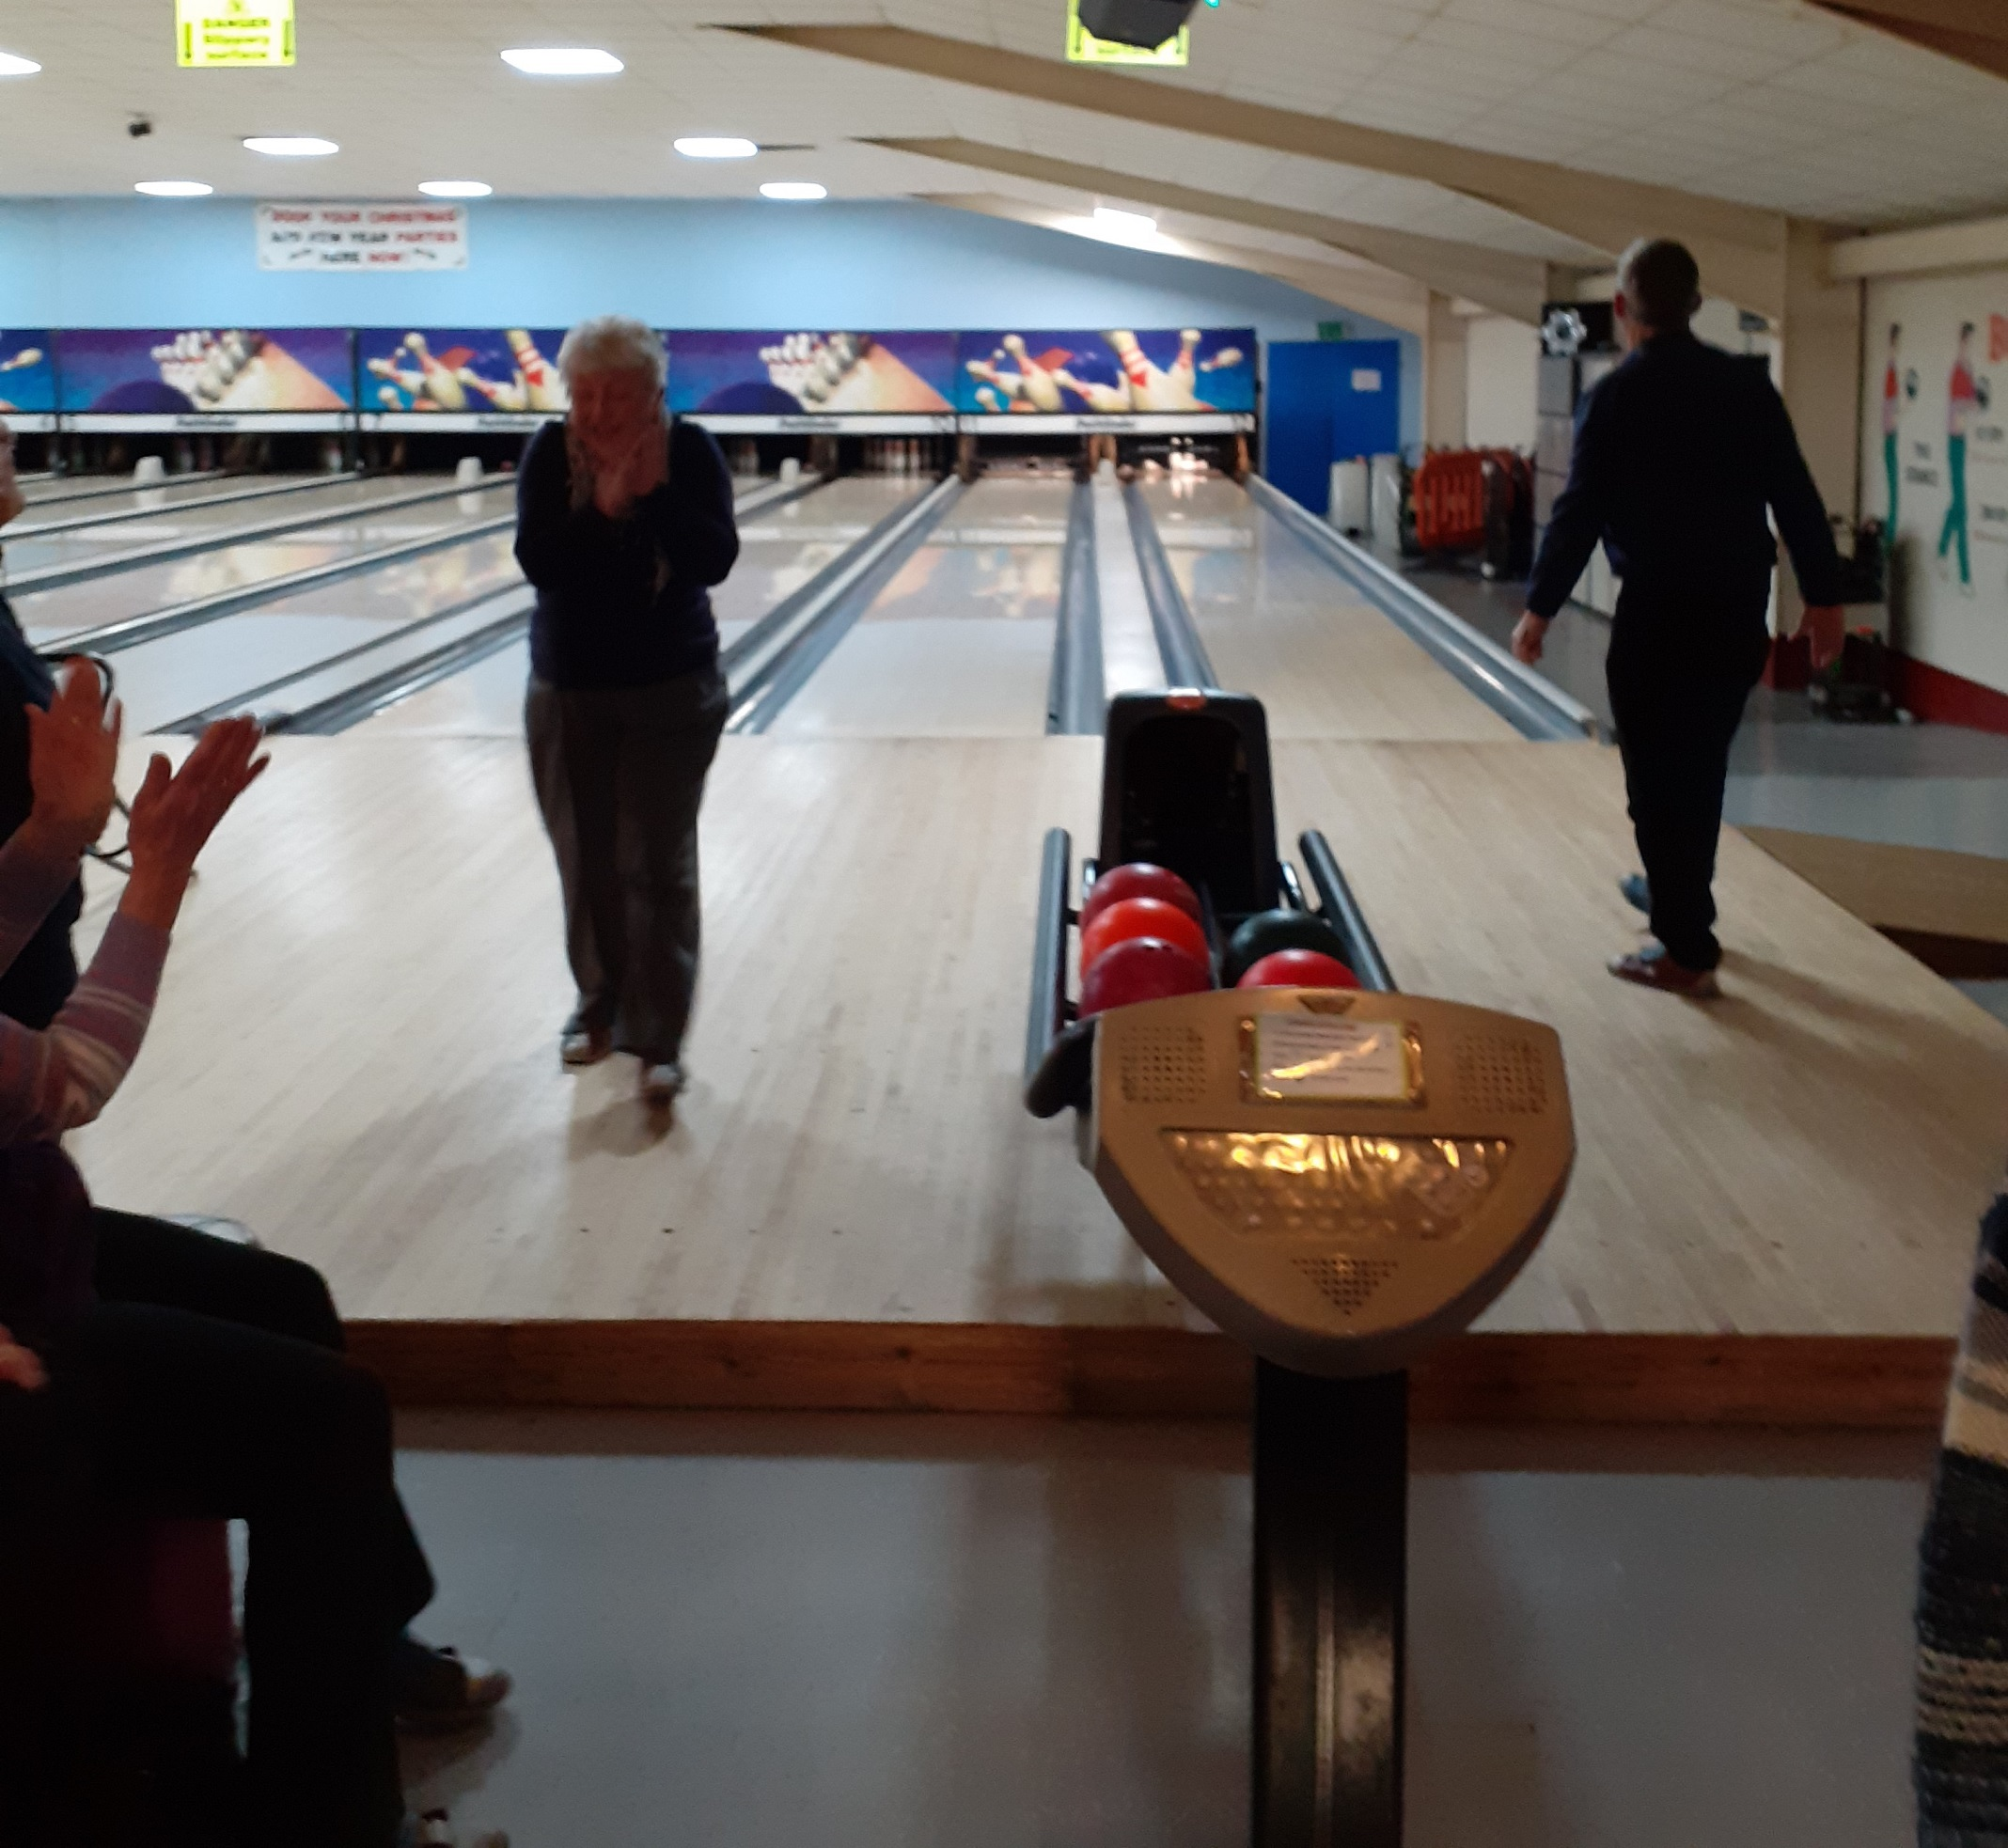 November 10 pin bowling